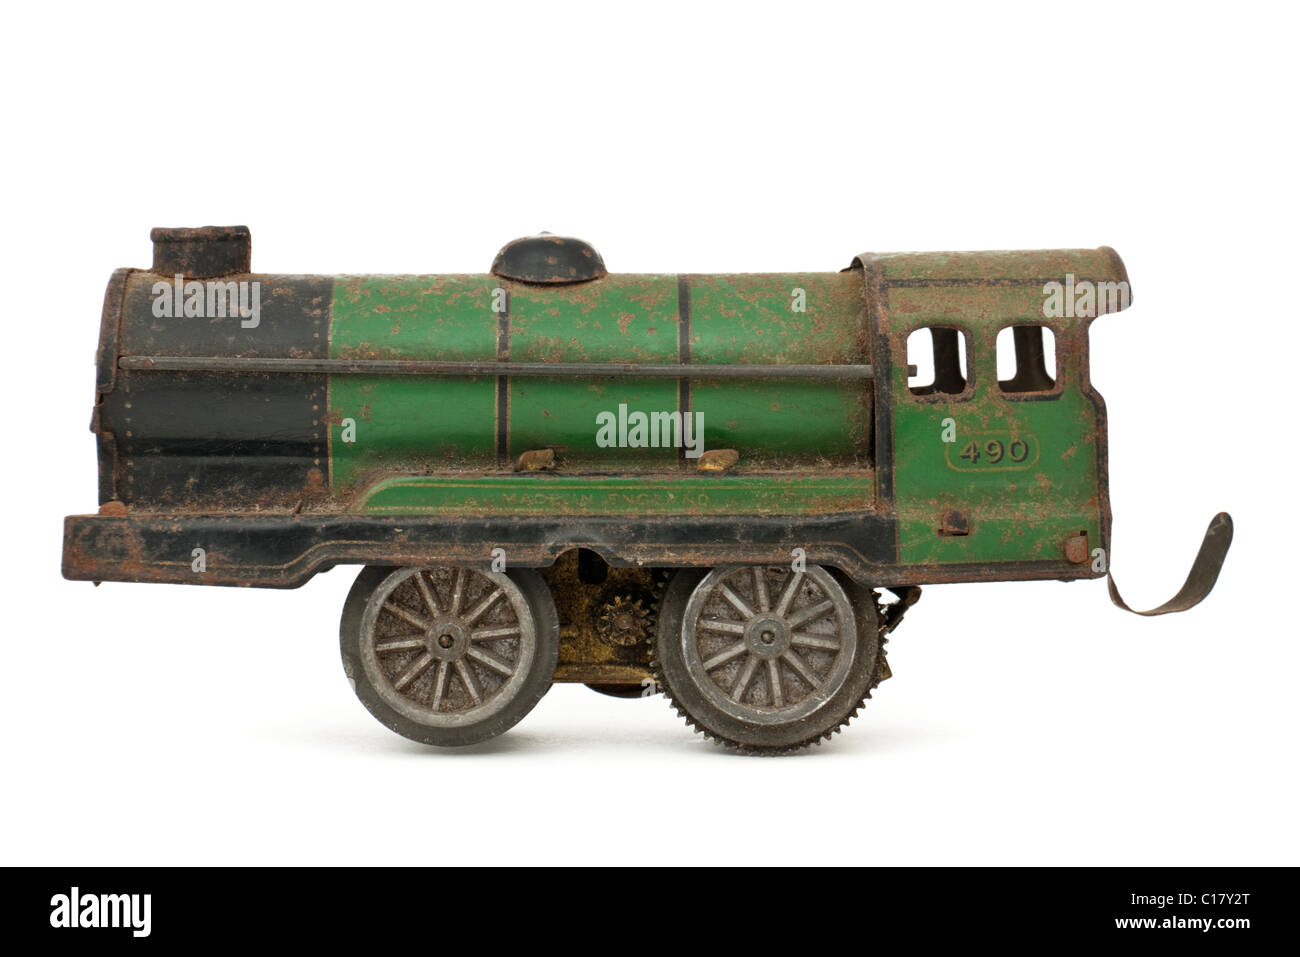 Early tinplate O-gauge 3-rail model railway locomotive - Stock Image